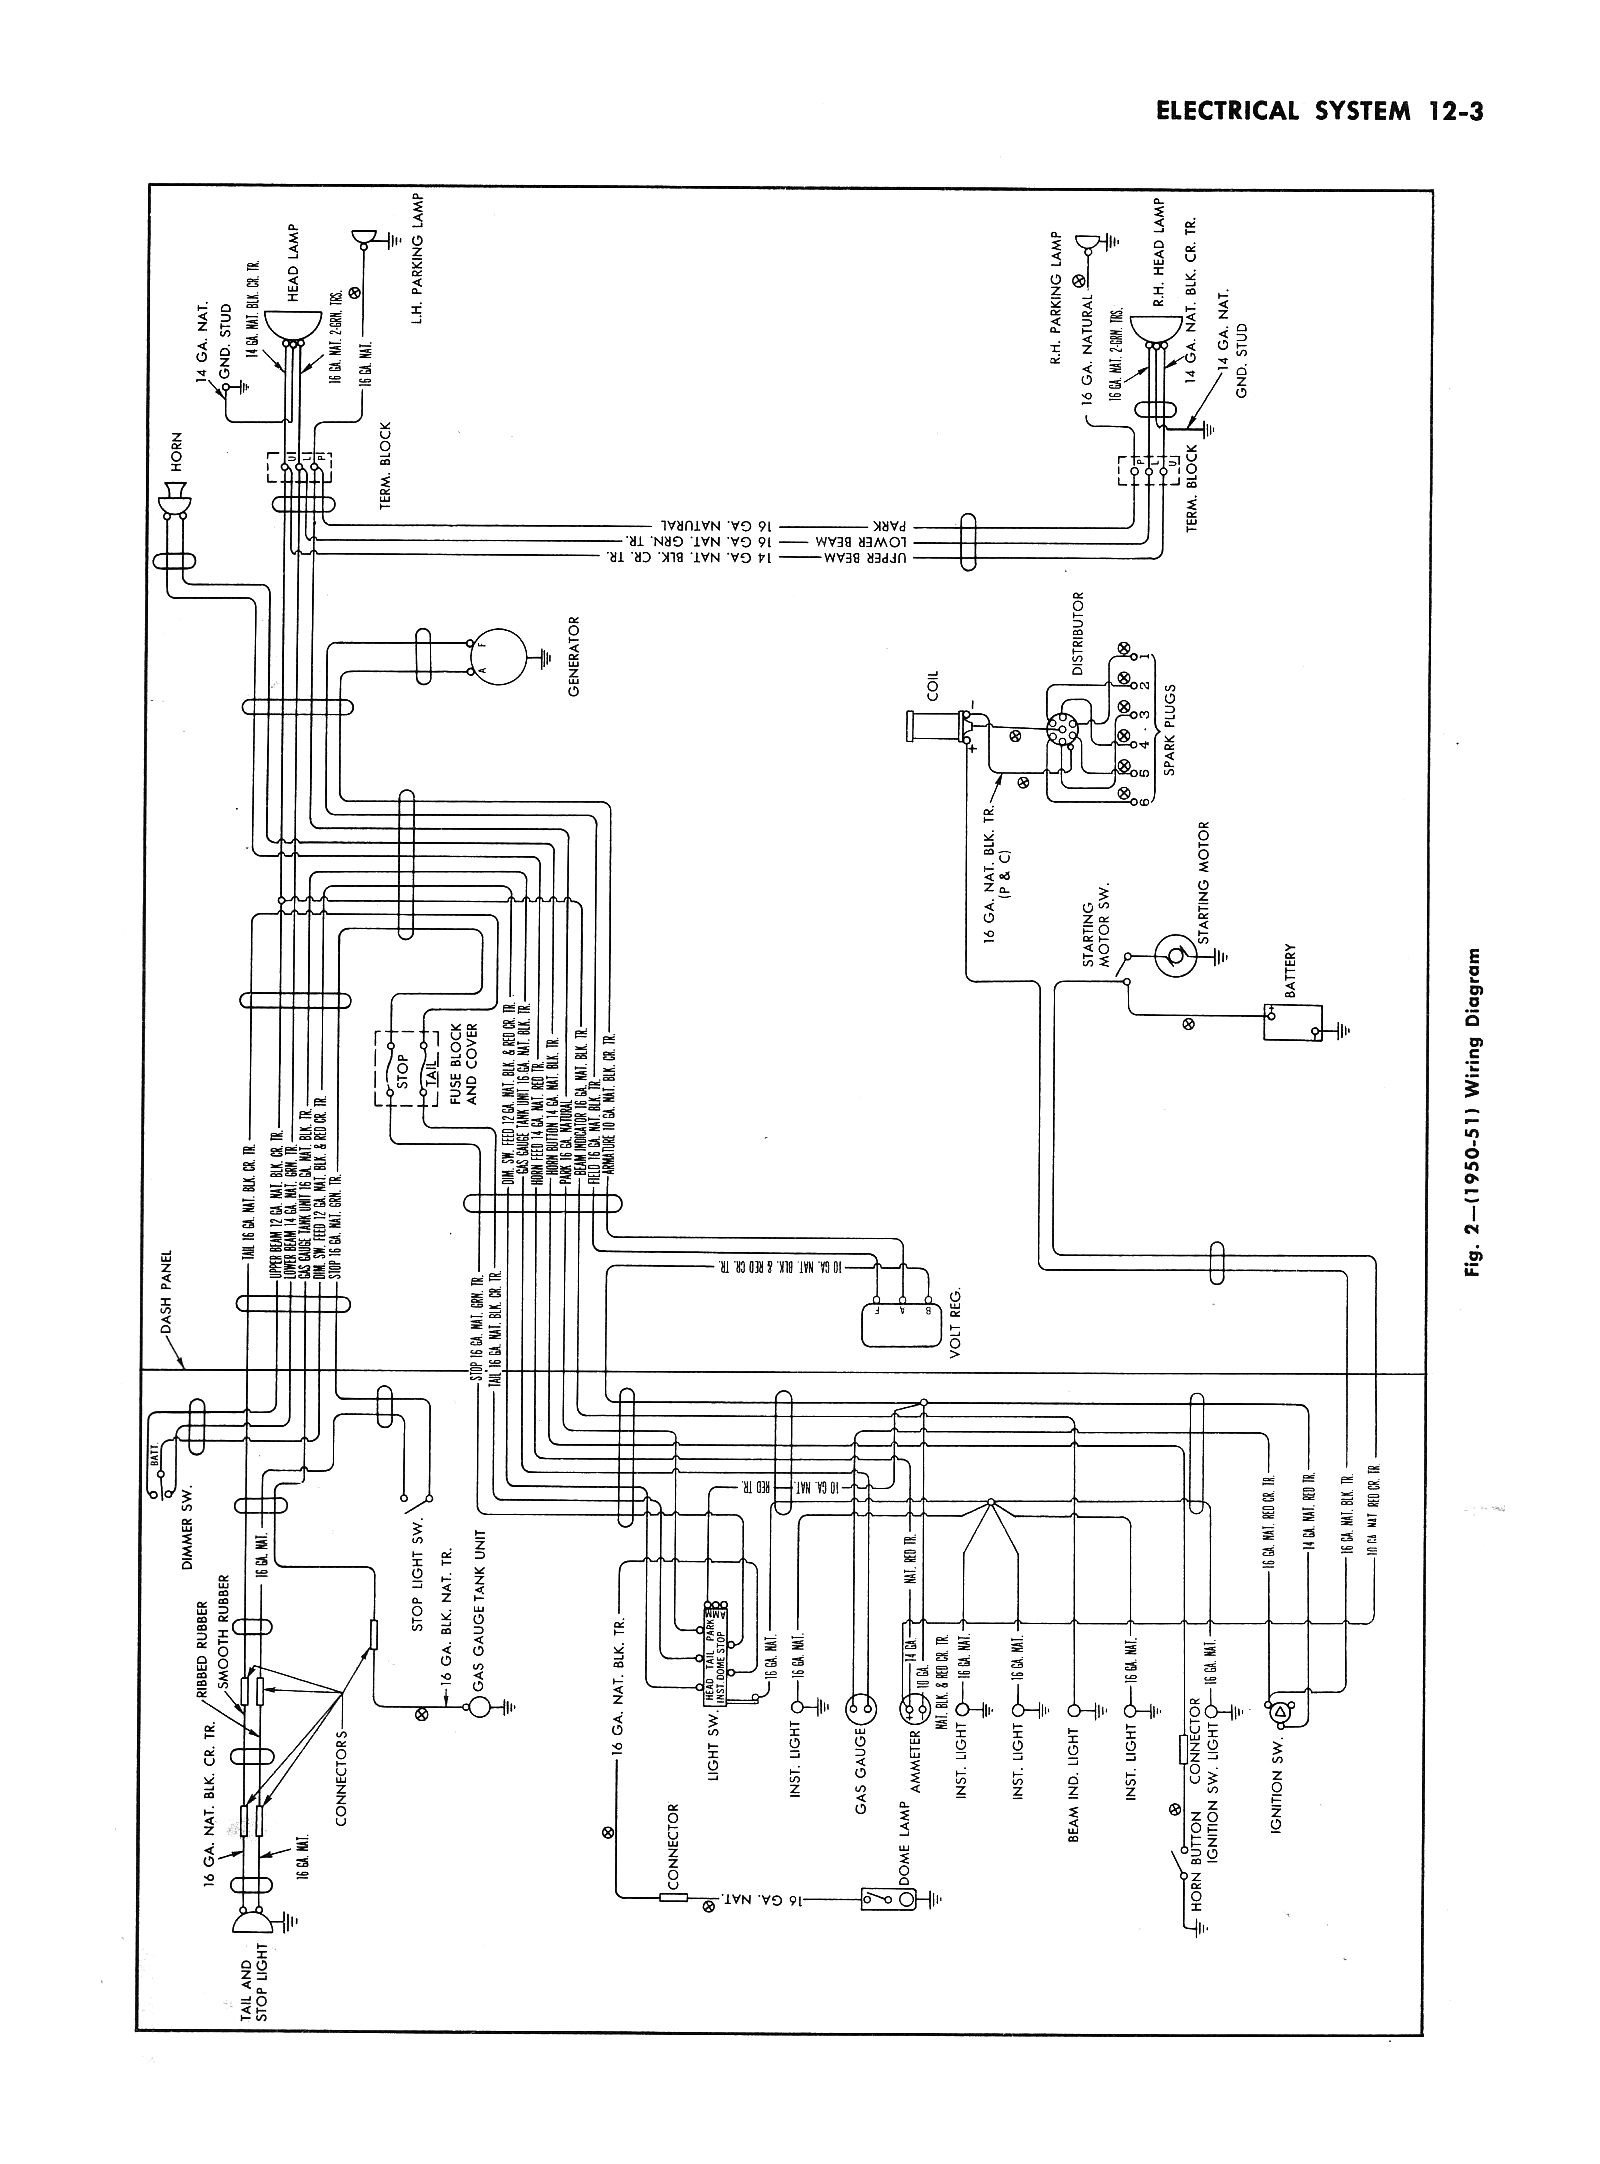 Packard Wiring Diagram Wiring Diagram Schemes 1966 Ford Truck Wiring Diagram  47 Ford Sedan Wiring Diagram